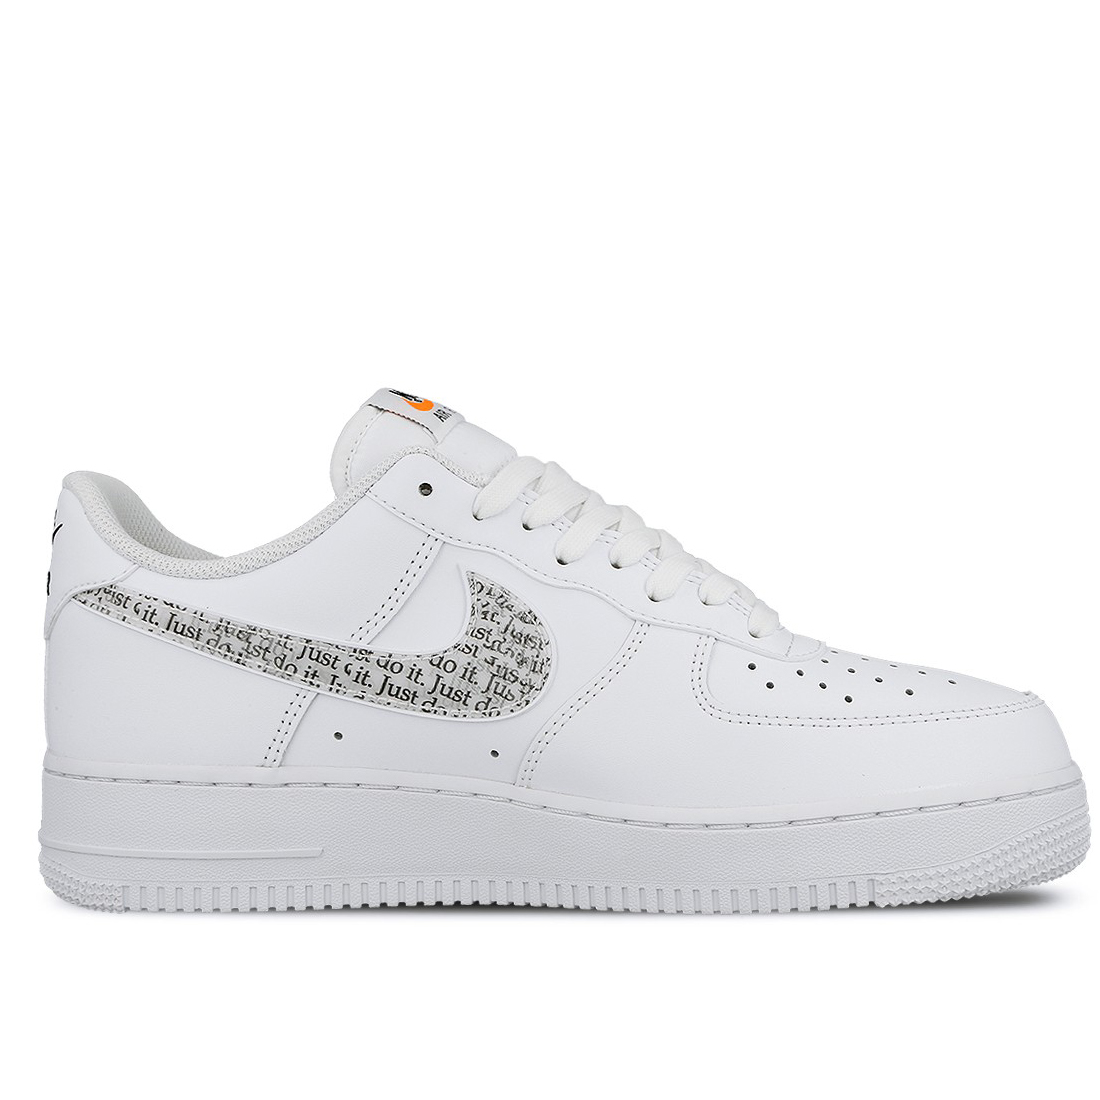 """74253ded Мужские кроссовки Nike Air Force 1 '07 LV8 """"Just Do It"""" Pack"""